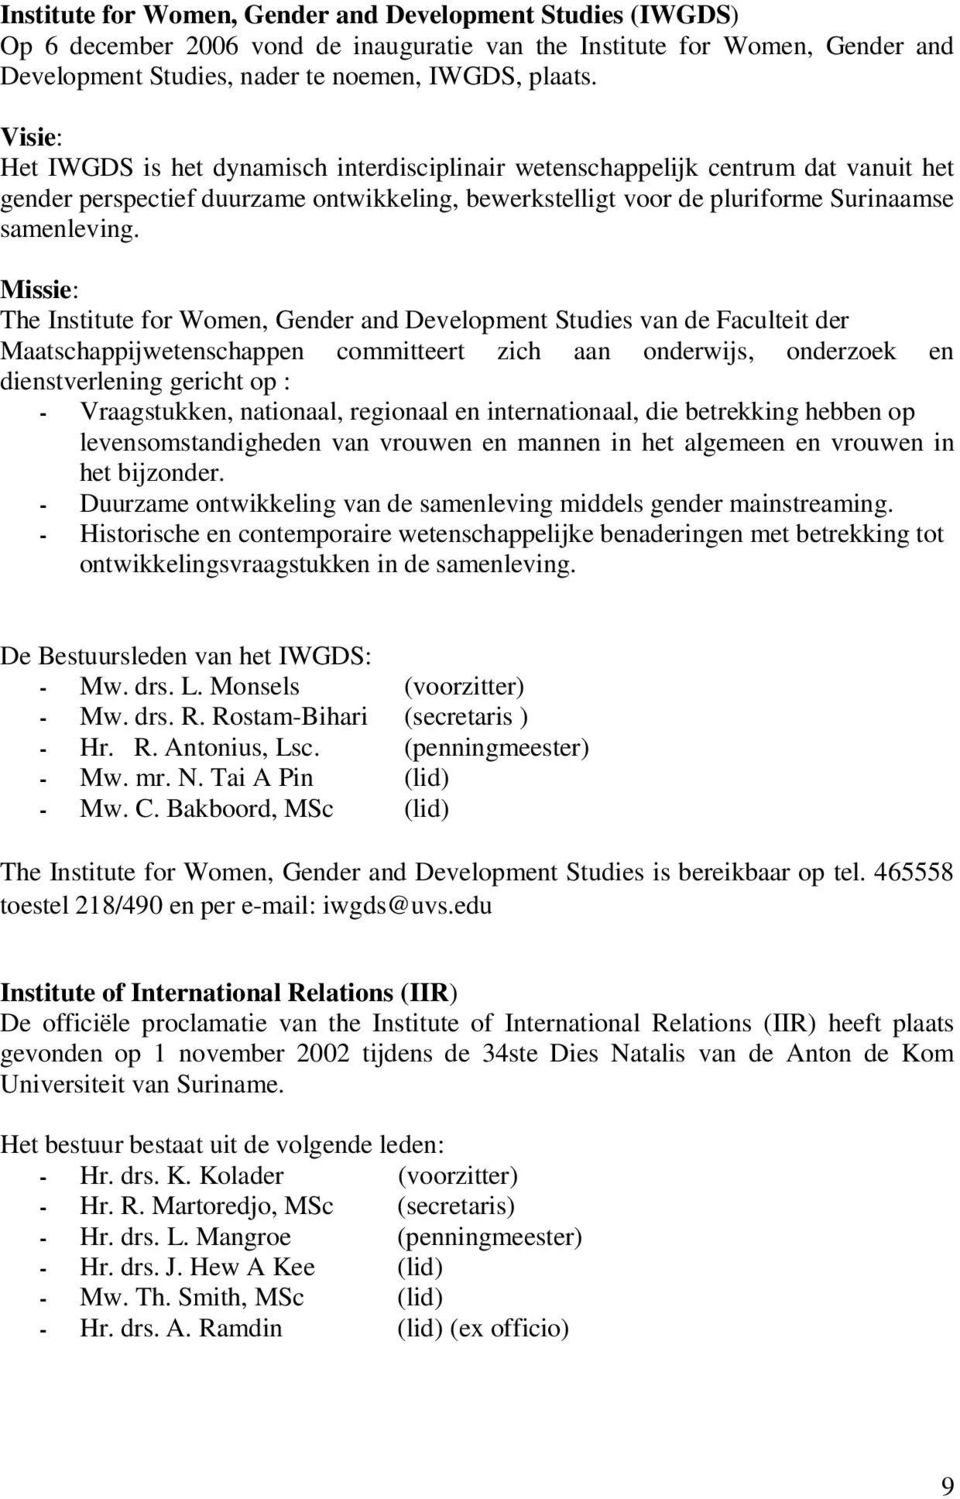 Missie: The Institute for Women, Gender and Development Studies van de Faculteit der Maatschappijwetenschappen committeert zich aan onderwijs, onderzoek en dienstverlening gericht op : -